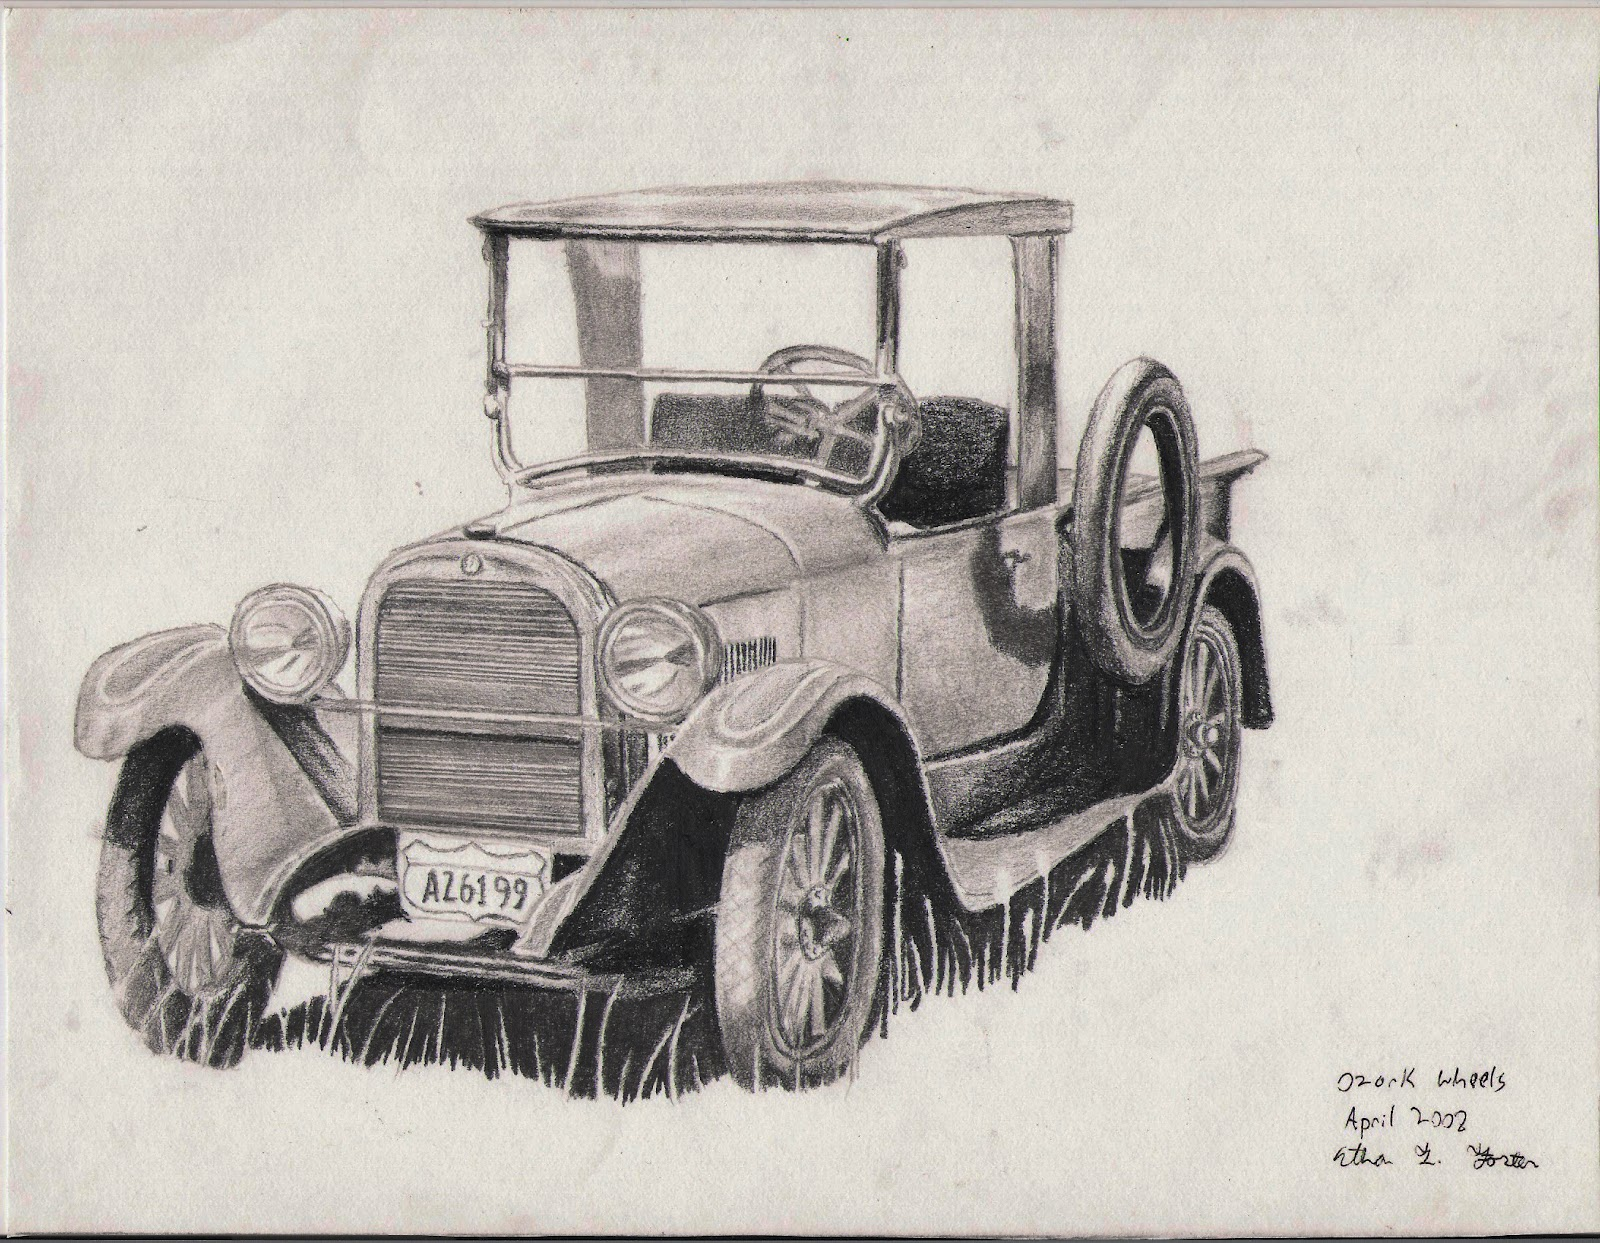 1600x1243 Old Forest Service Car, In Hb, B3, And Mech. Pencil E.t. Foster